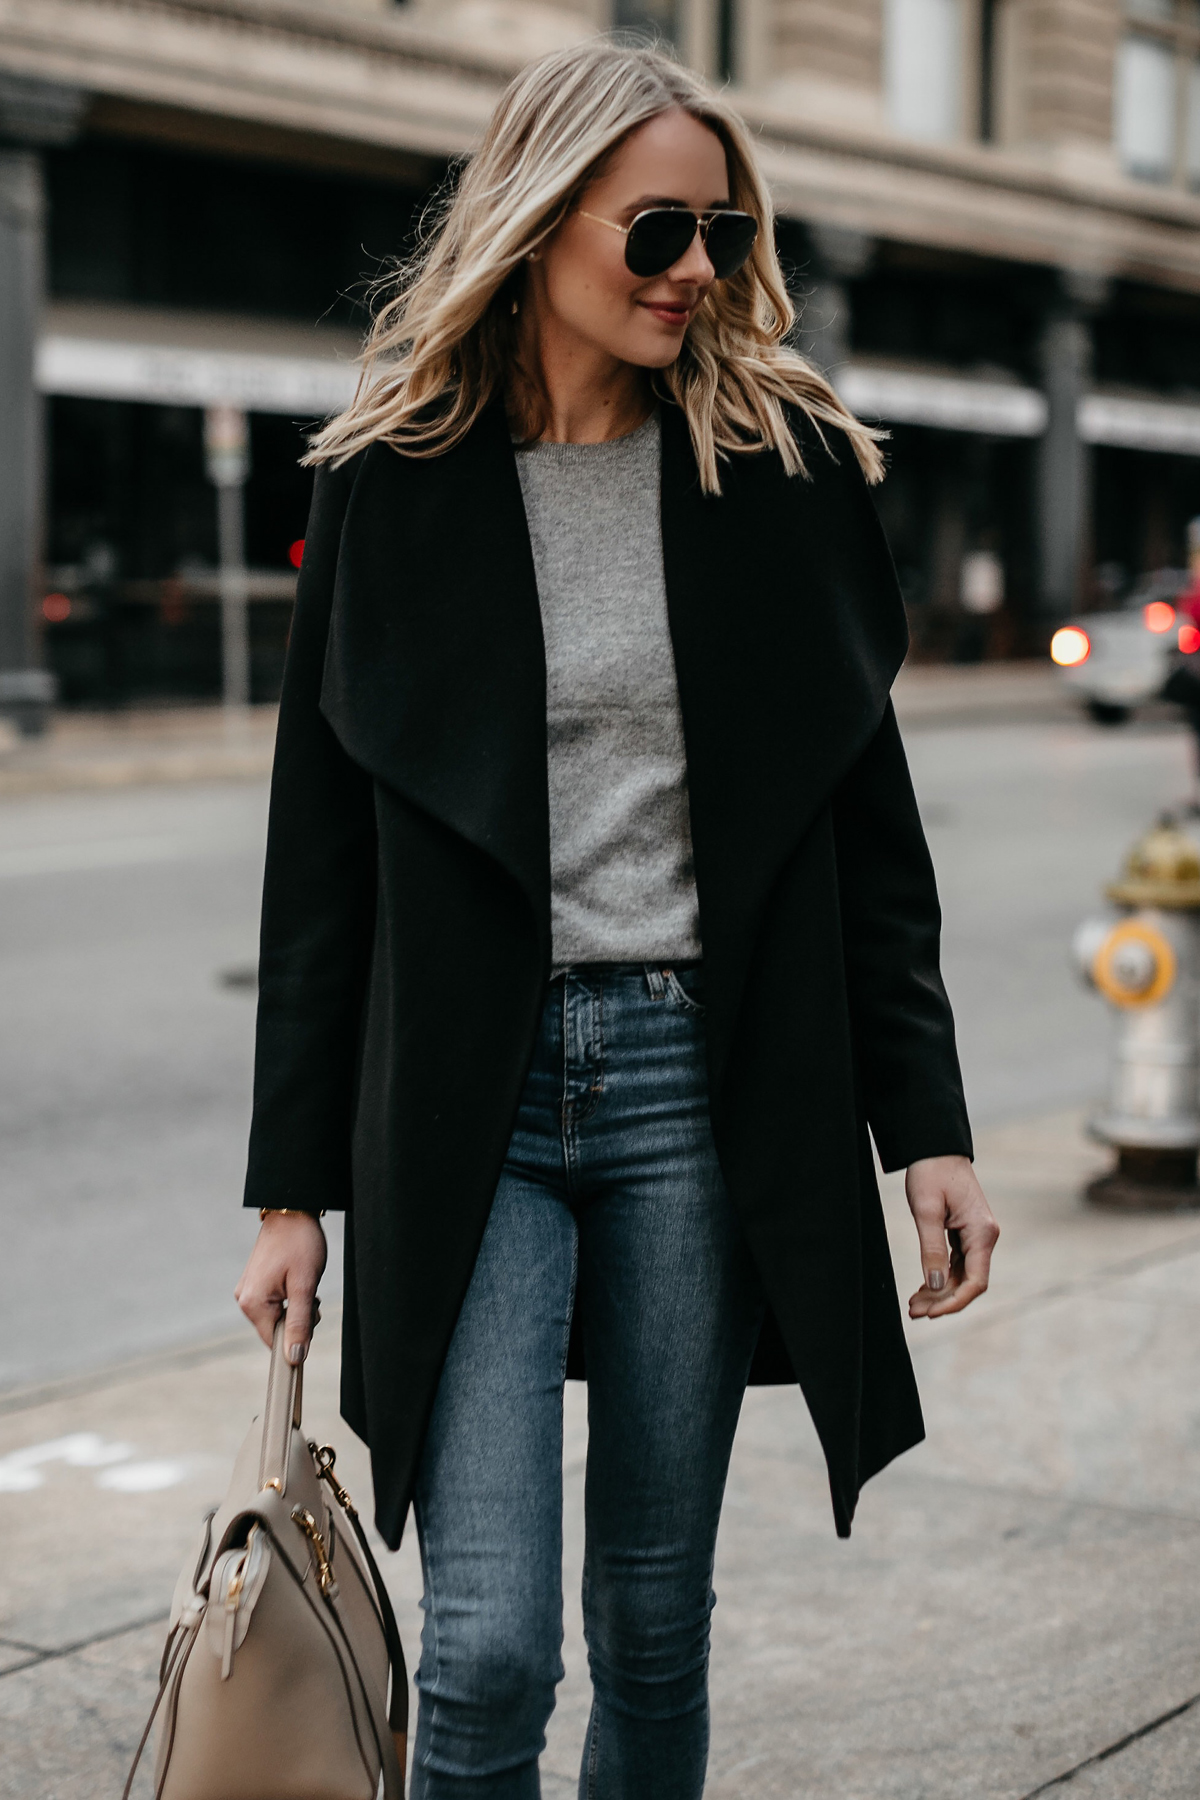 Blonde Woman Wearing Black Wrap Coat Grey Sweater Fashion Jackson Dallas Blogger Fashion Blogger Street Style